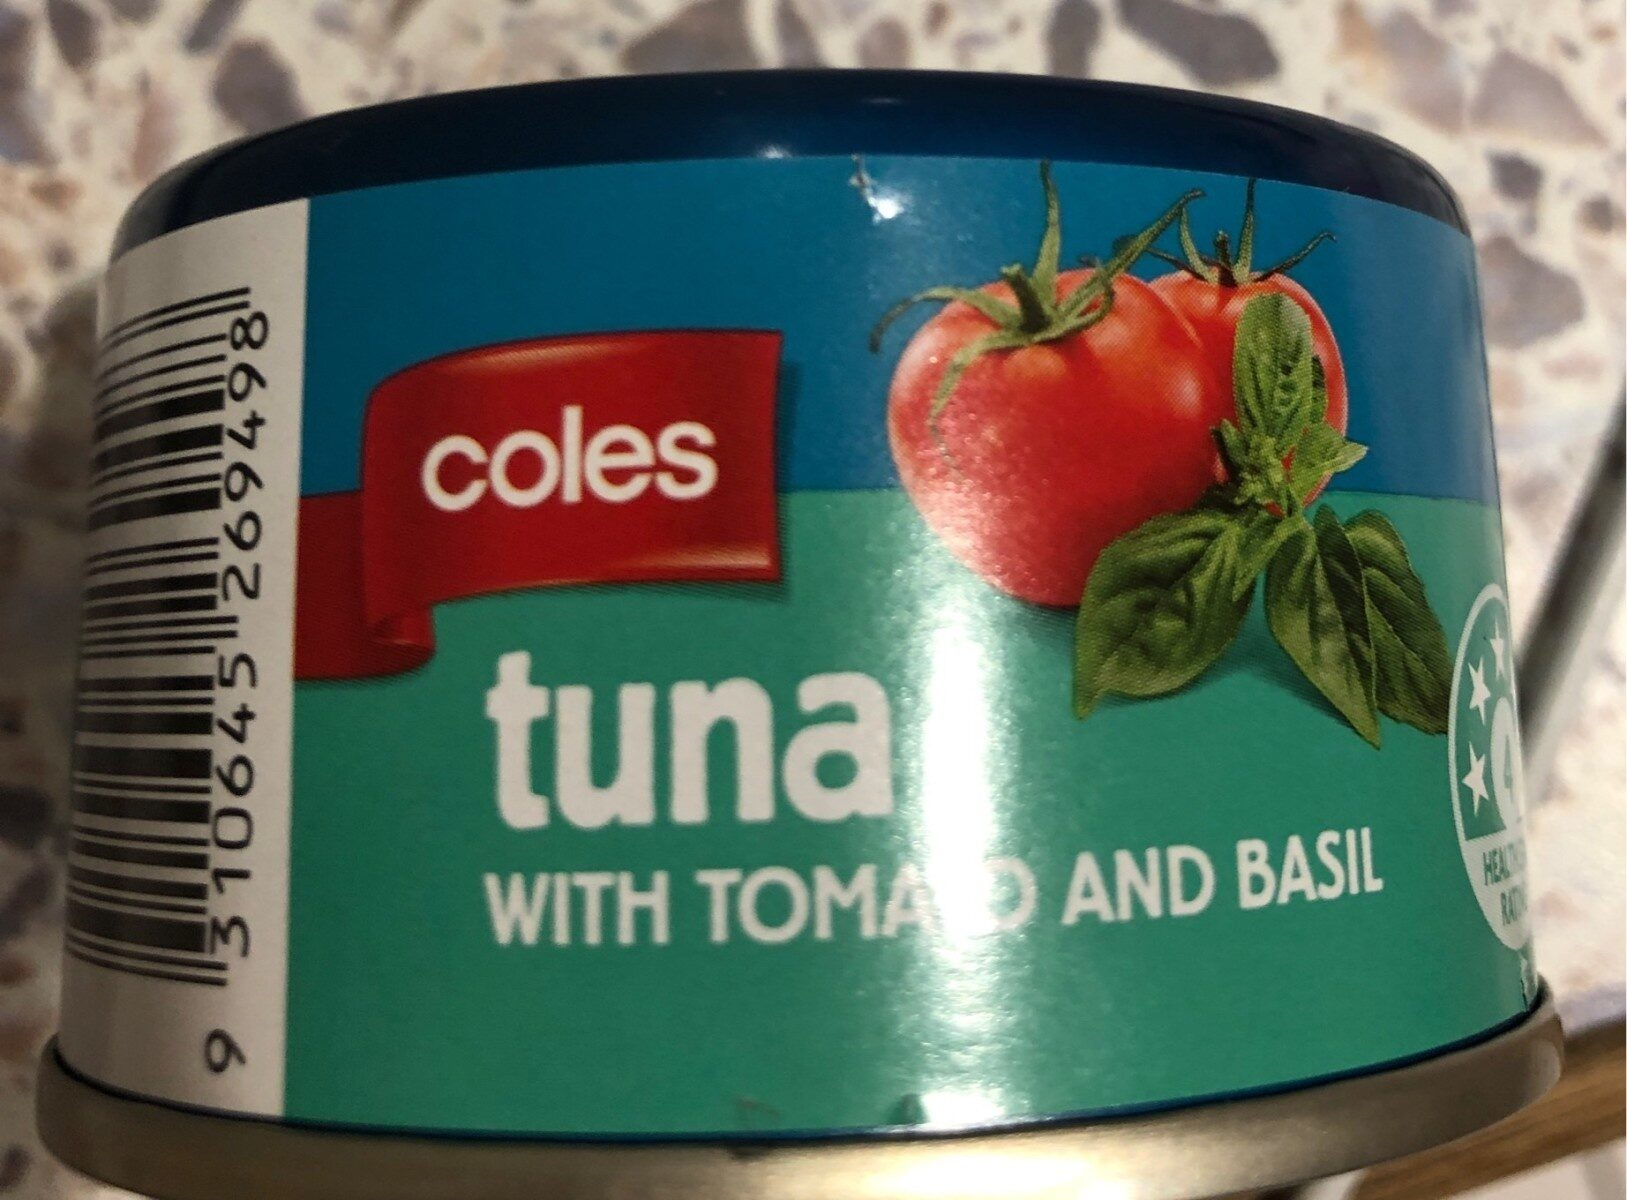 Tuna with tomato and basil - Product - en